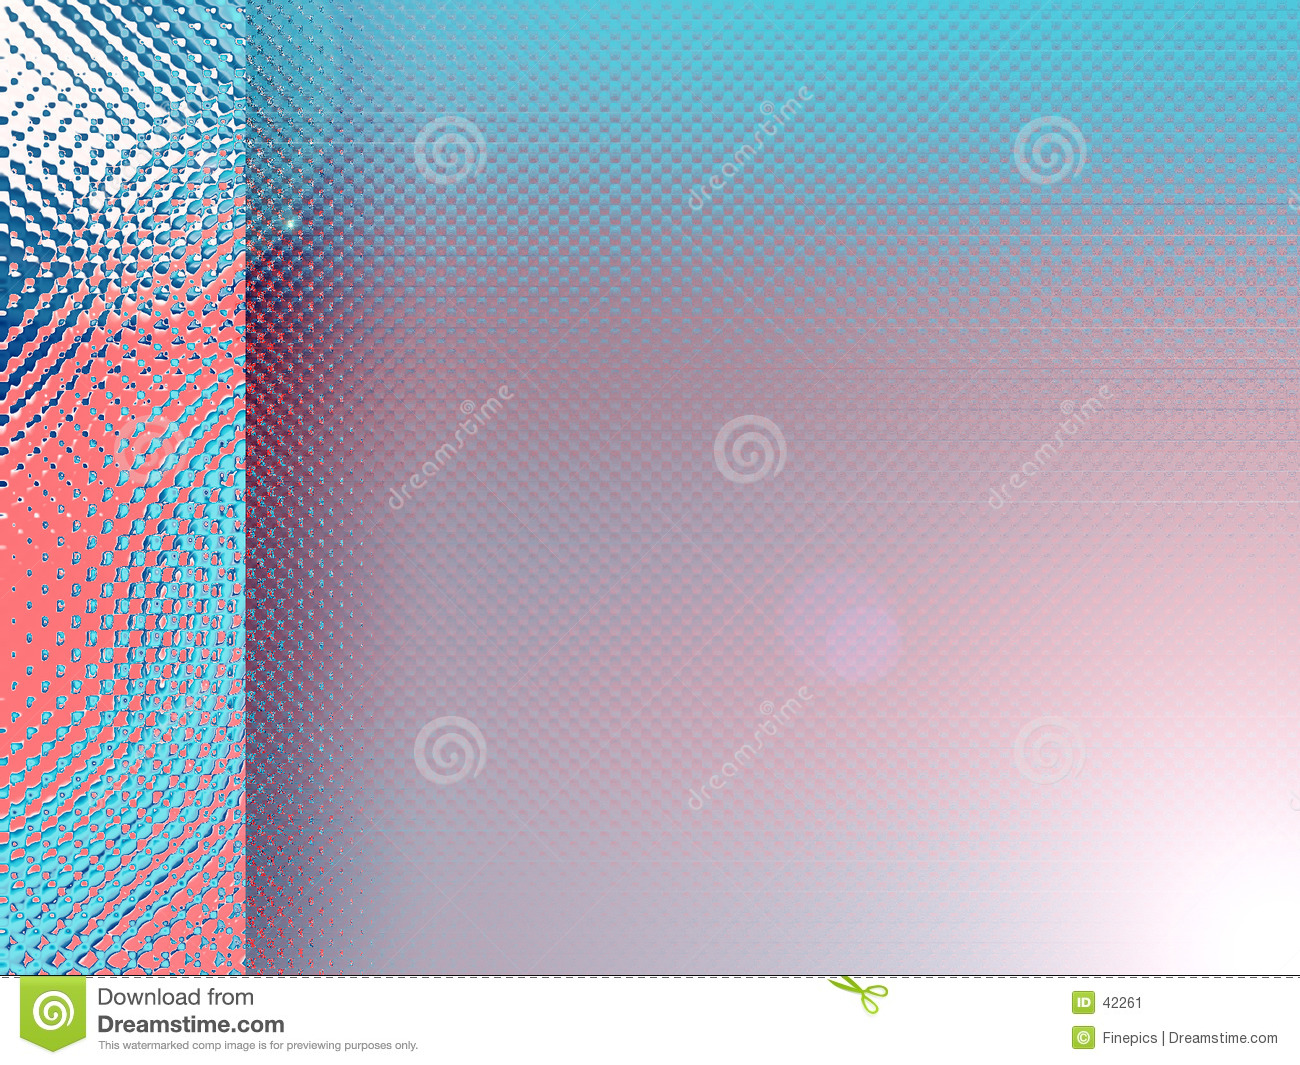 Blue and red background